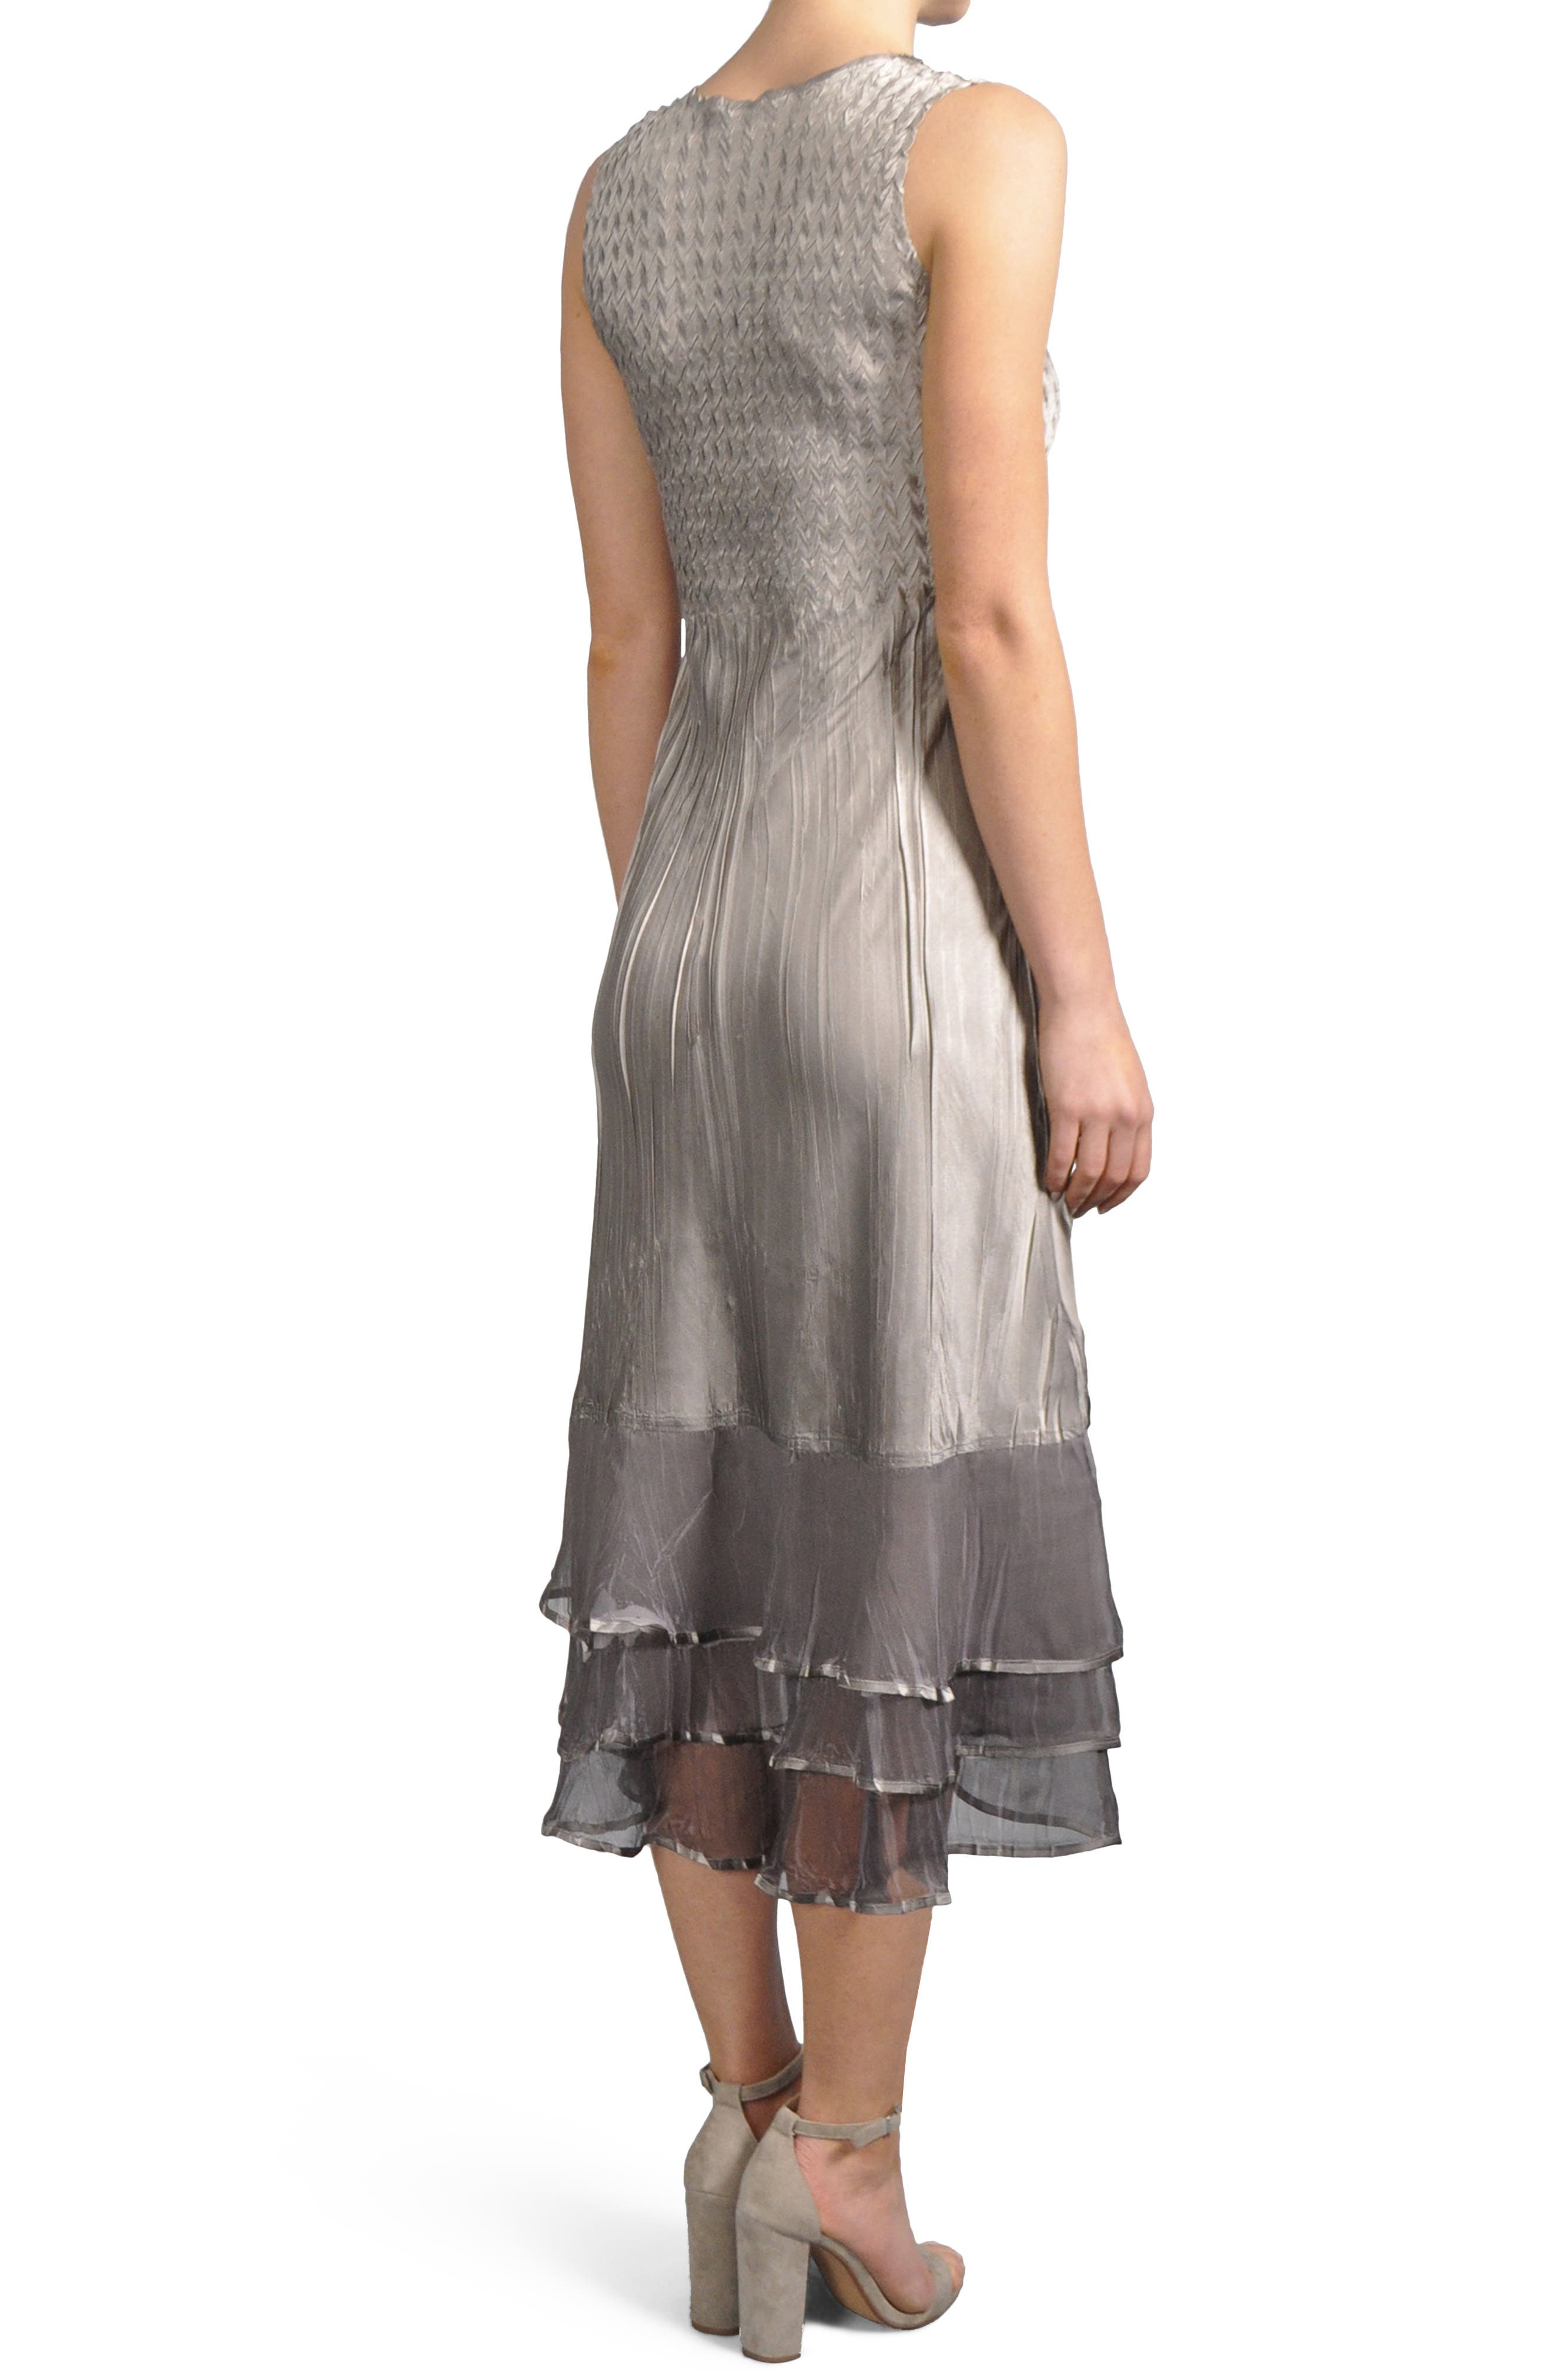 Embellished Tiered Hem Dress With Jacket,                             Alternate thumbnail 4, color,                             Oyster Smoke Ombre